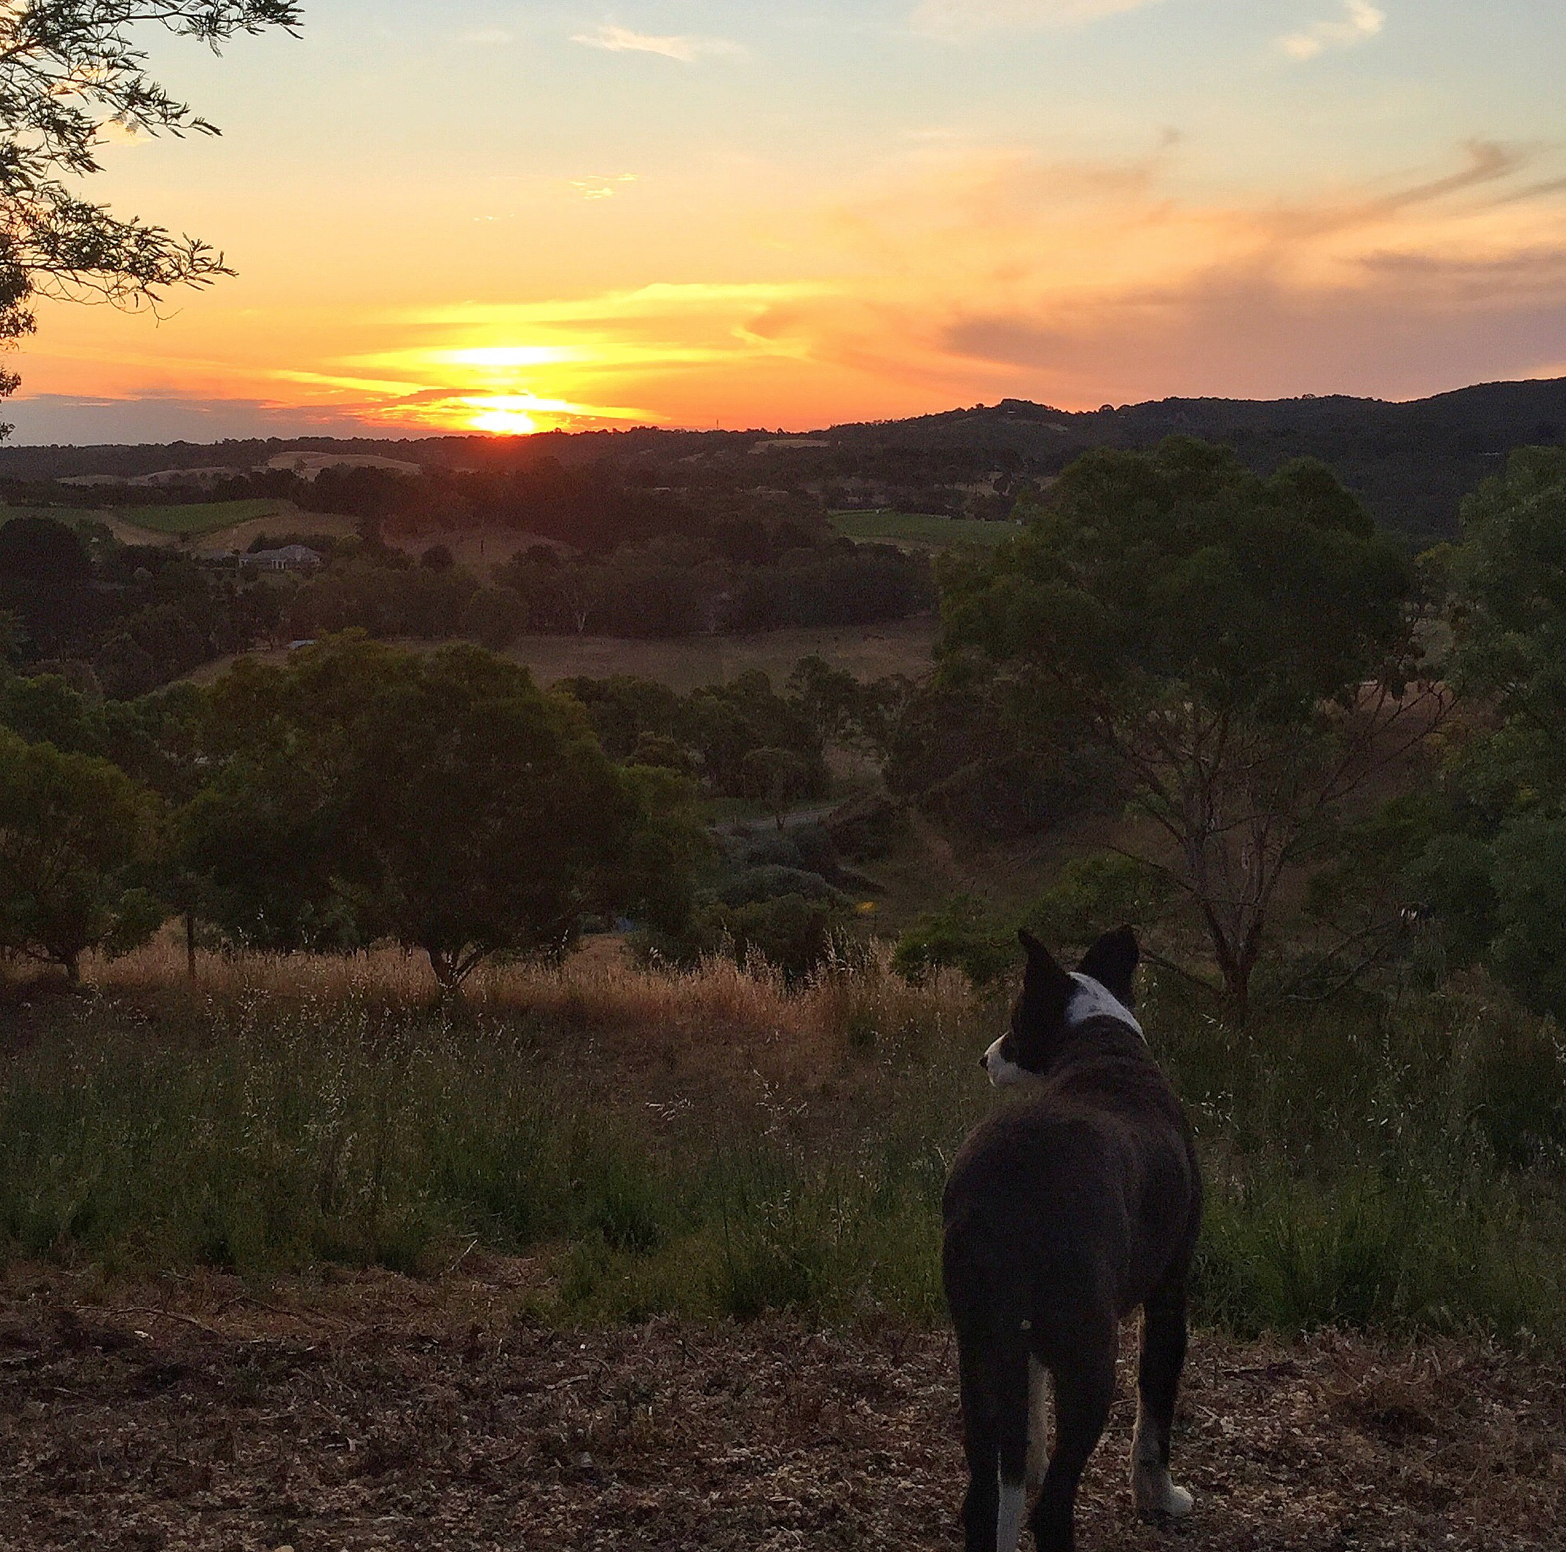 Sunset in Balhannah in the Adelaide Hills